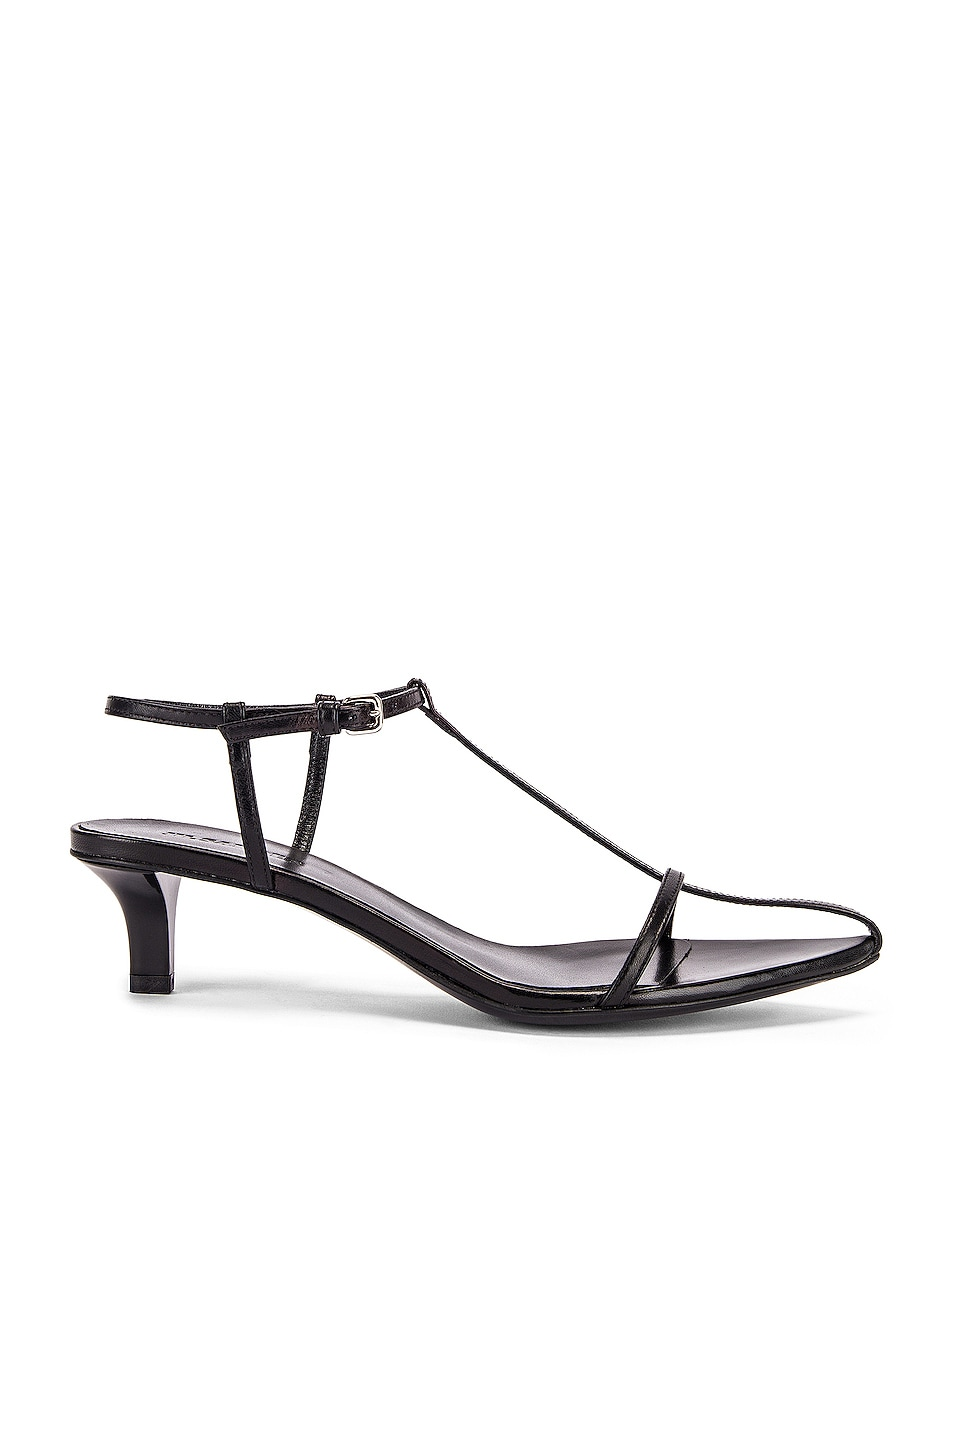 Image 1 of Jil Sander Leather Kitten Heel Sandals in Black